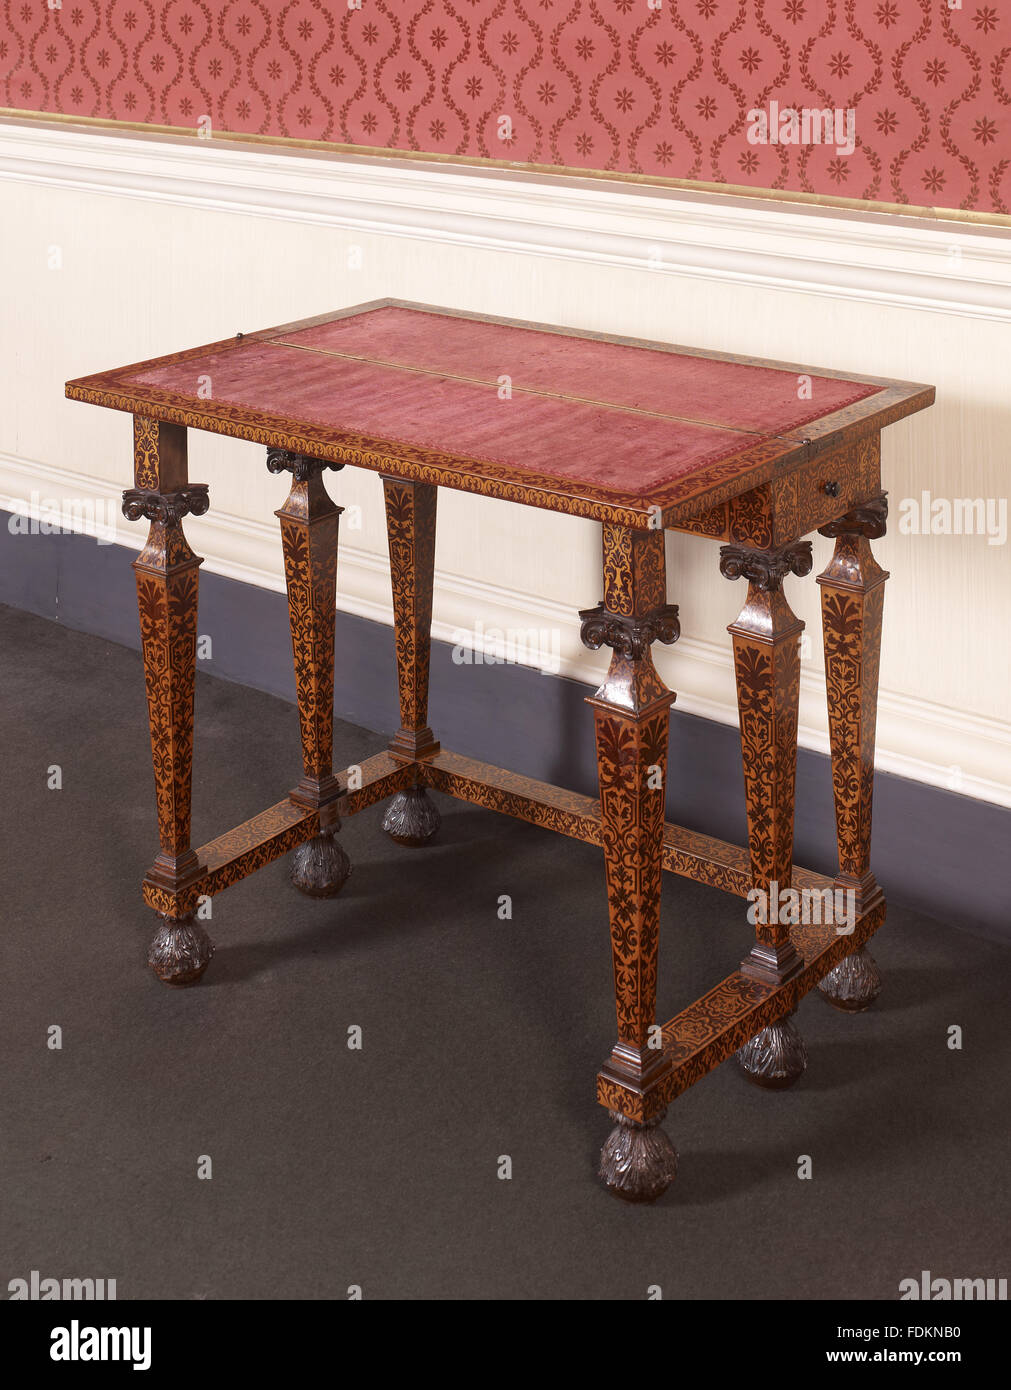 William & Mary marquetry card table with folding top at Clandon Park, Surrey. The table is in the manner of - Stock Image